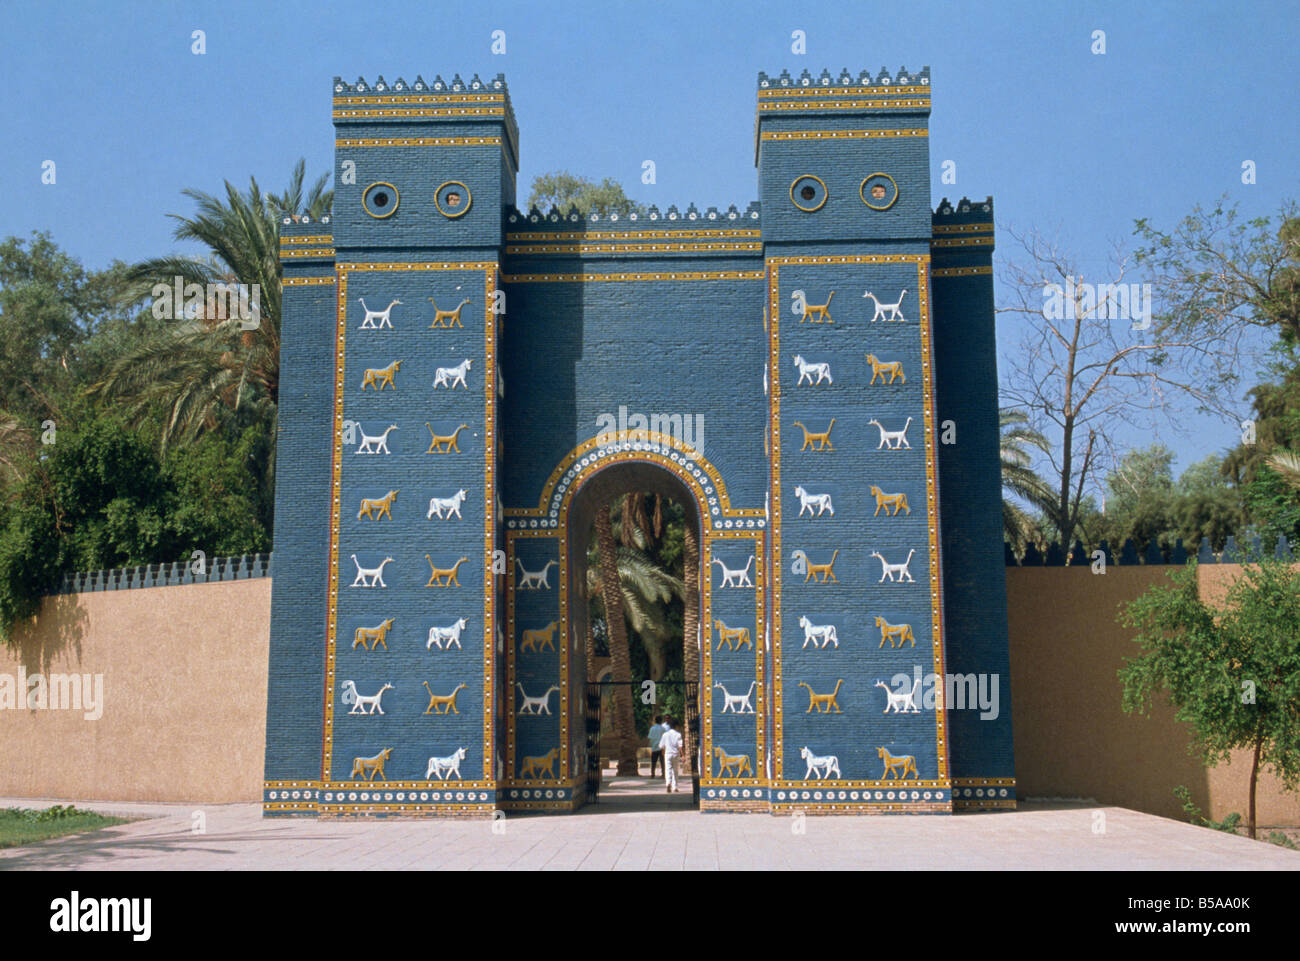 Ishtar Gate Babylon Iraq Middle East G Thouvenin Stock Photo